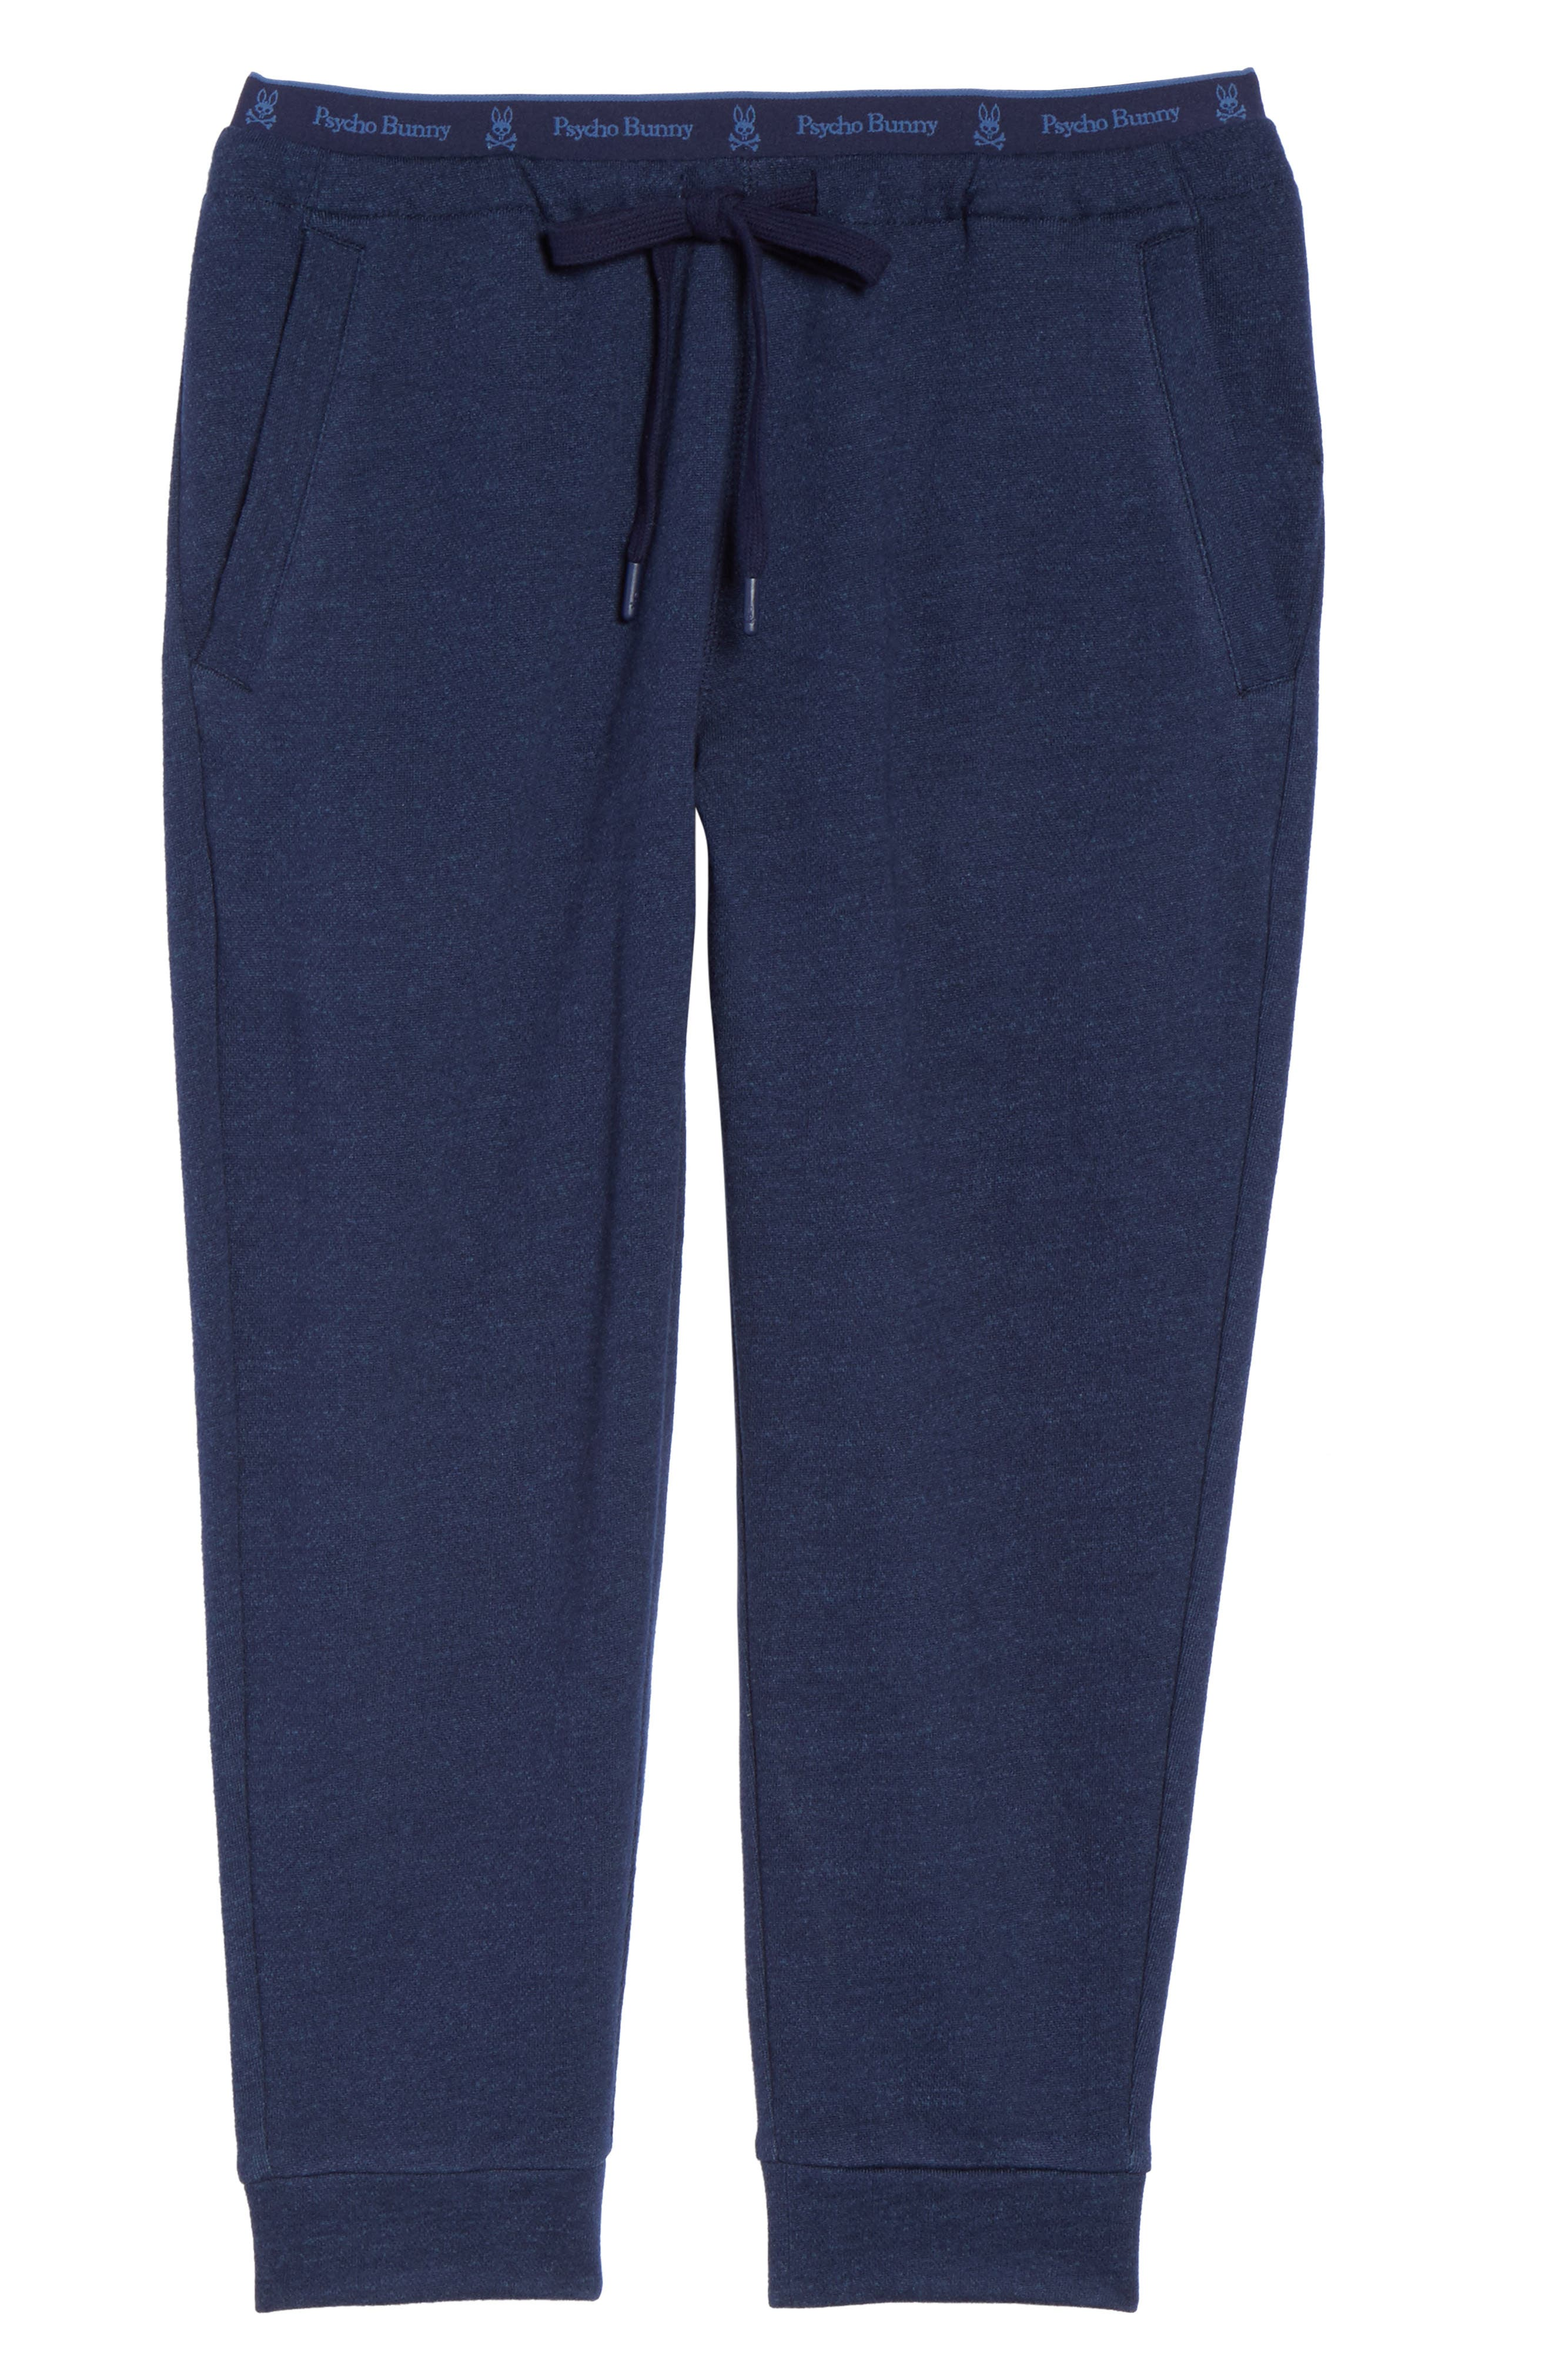 French Terry Pants,                             Alternate thumbnail 4, color,                             Peacoat